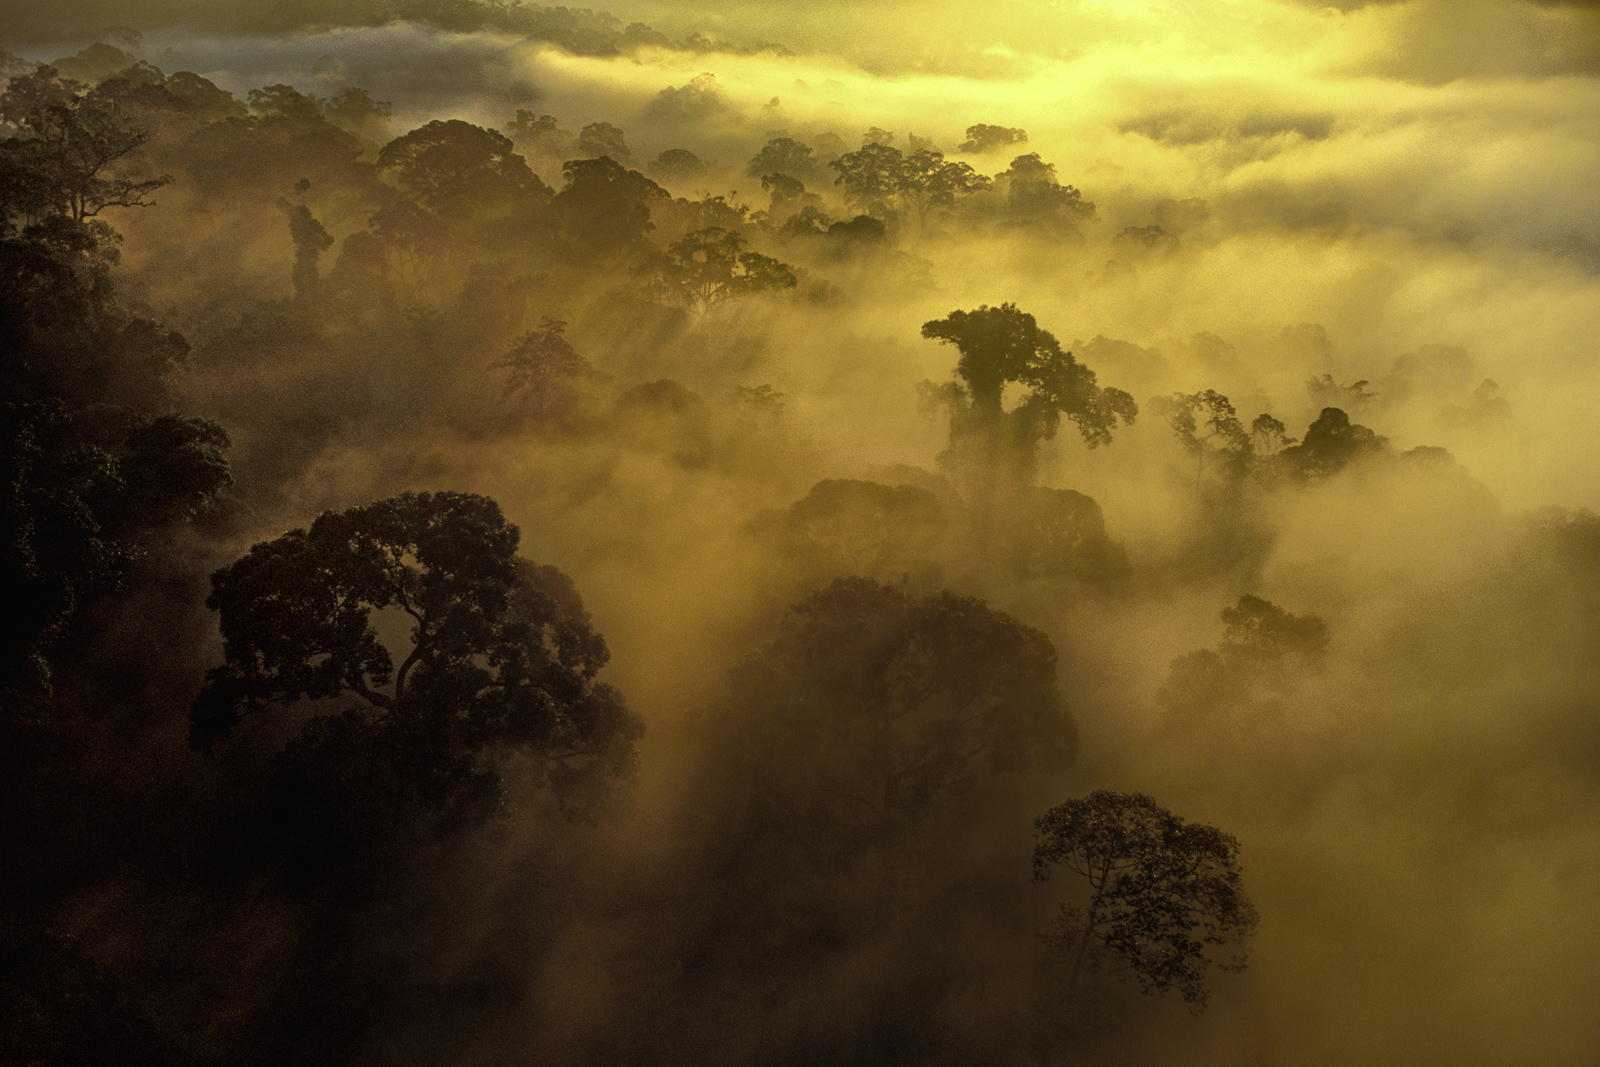 Morning mist over rainforest, Danum Valley Conservation Area, Borneo